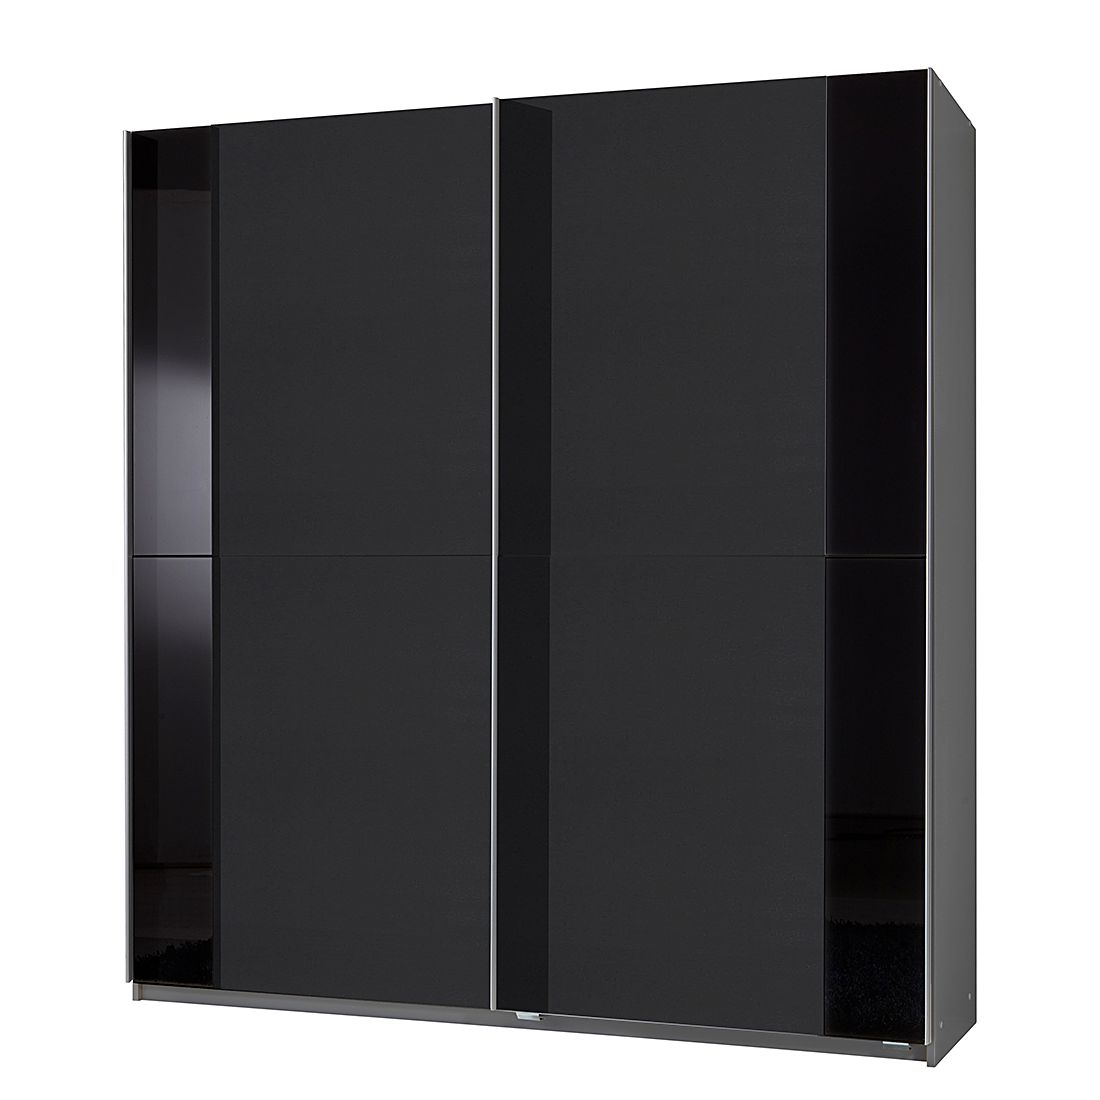 schwebet renschrank avenue anthrazit alu schwarz schrankbreite 135 cm 2 t rig wimex. Black Bedroom Furniture Sets. Home Design Ideas